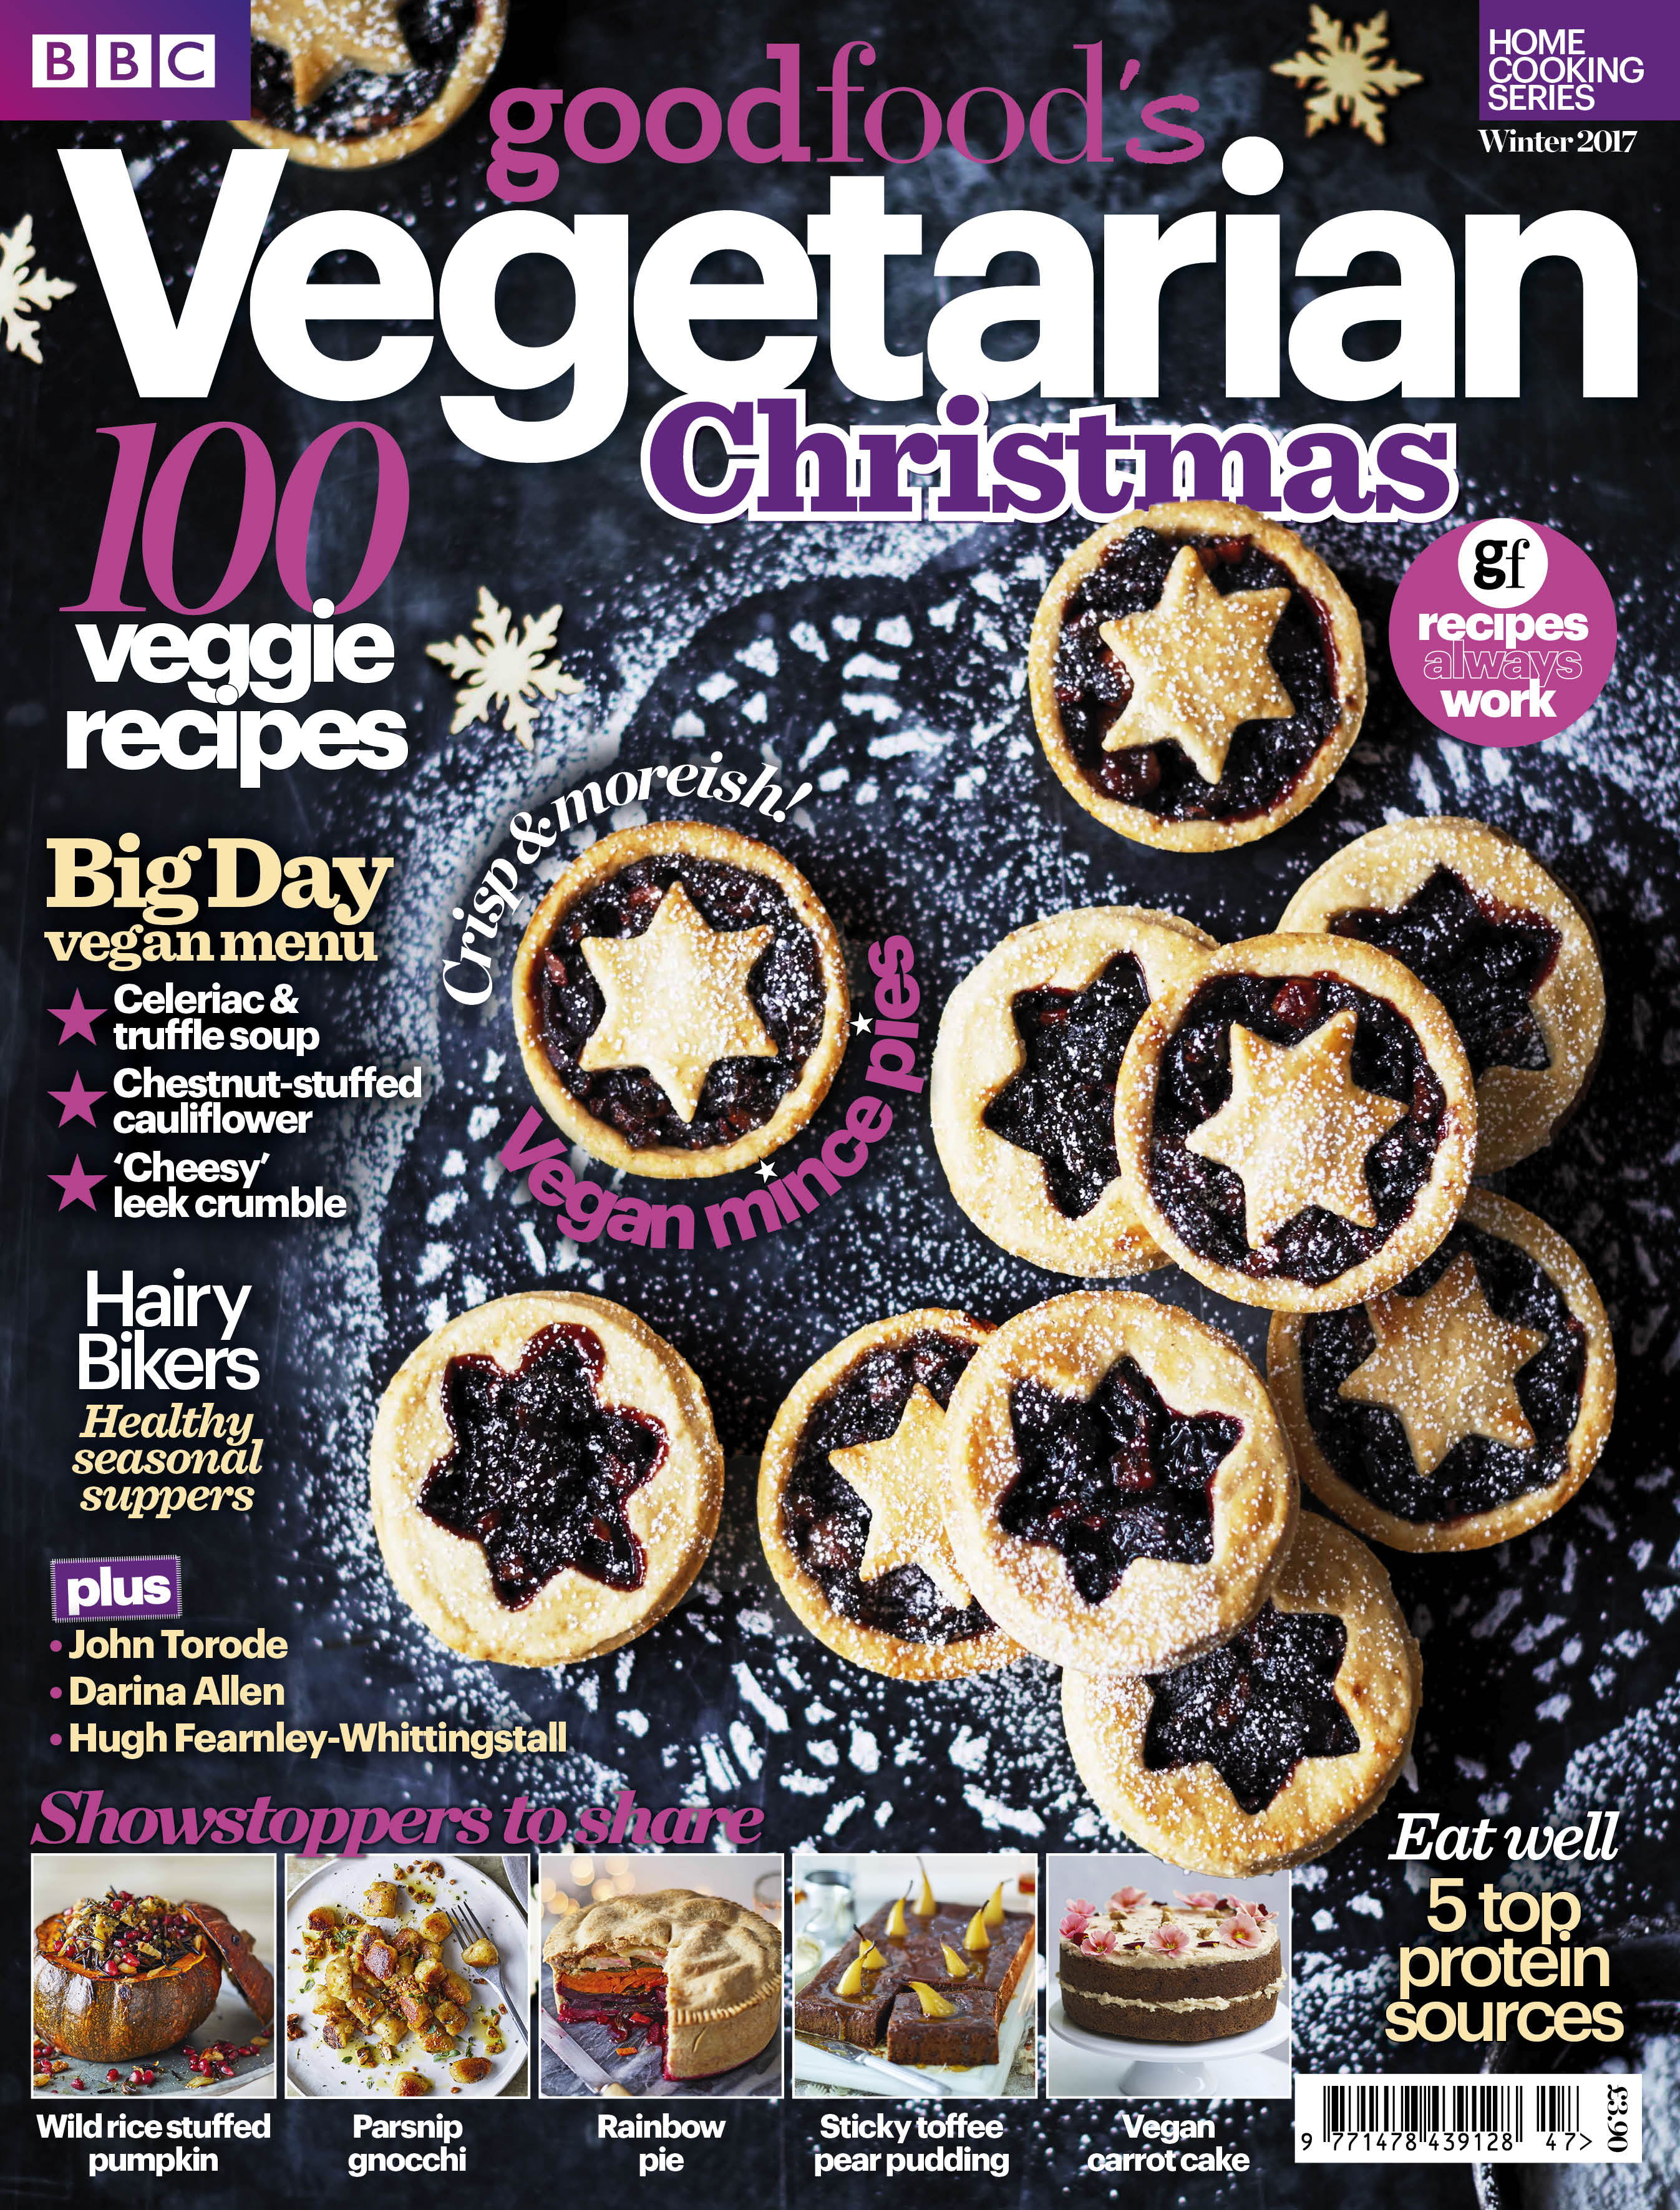 BBC Good Food's Vegetarian Christmas